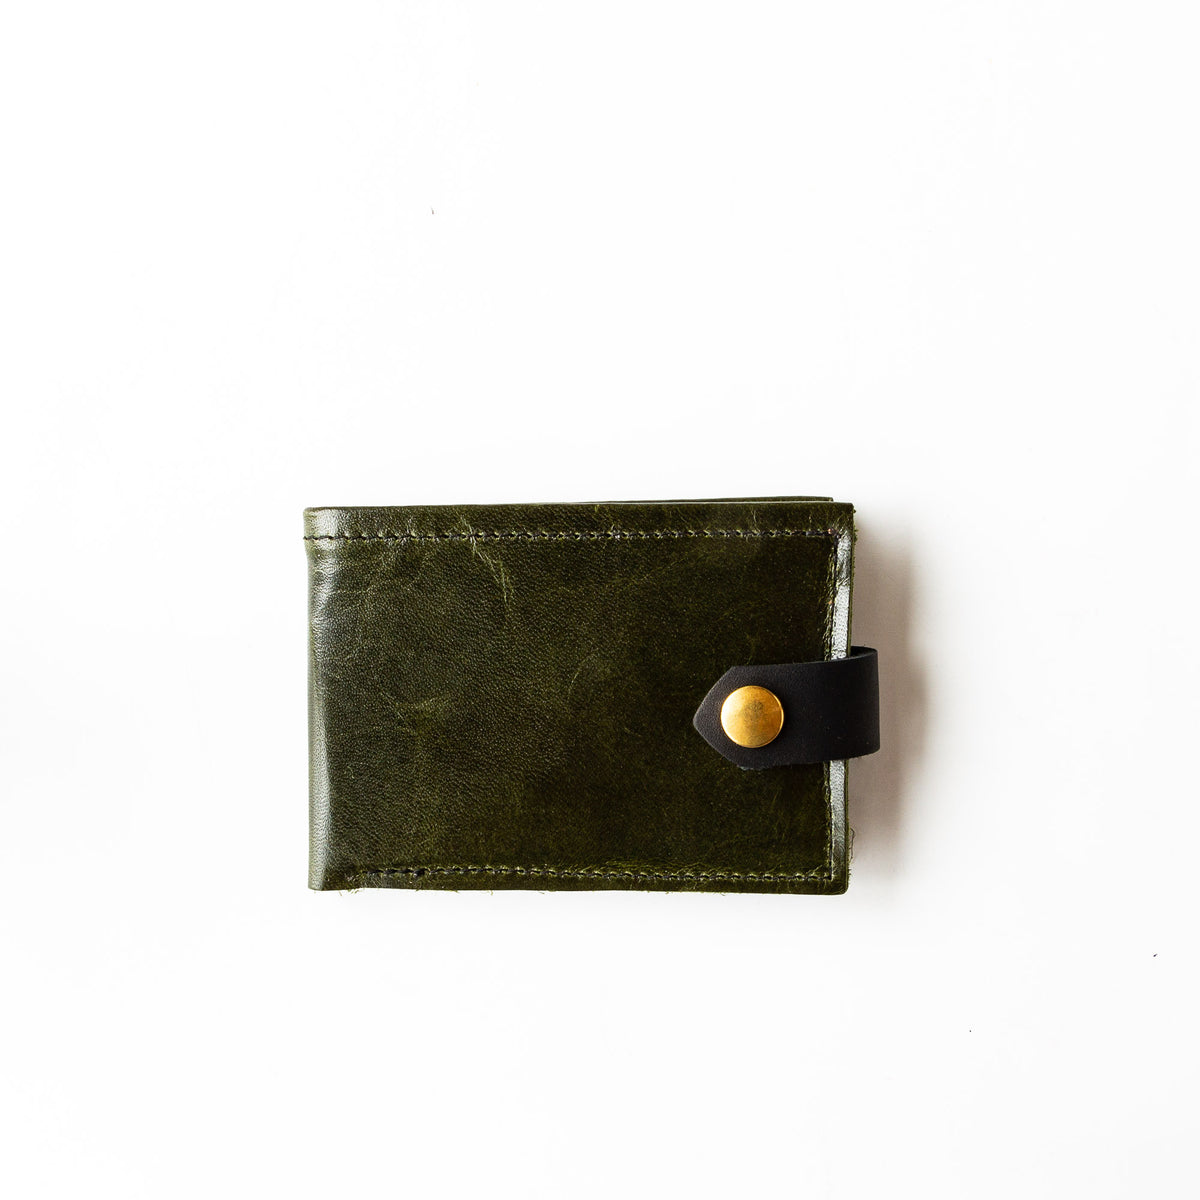 Forest Green - Oiled Black - St-Joseph - Classic Unisex Wallet / Card Holder - Sold by Chic & Basta